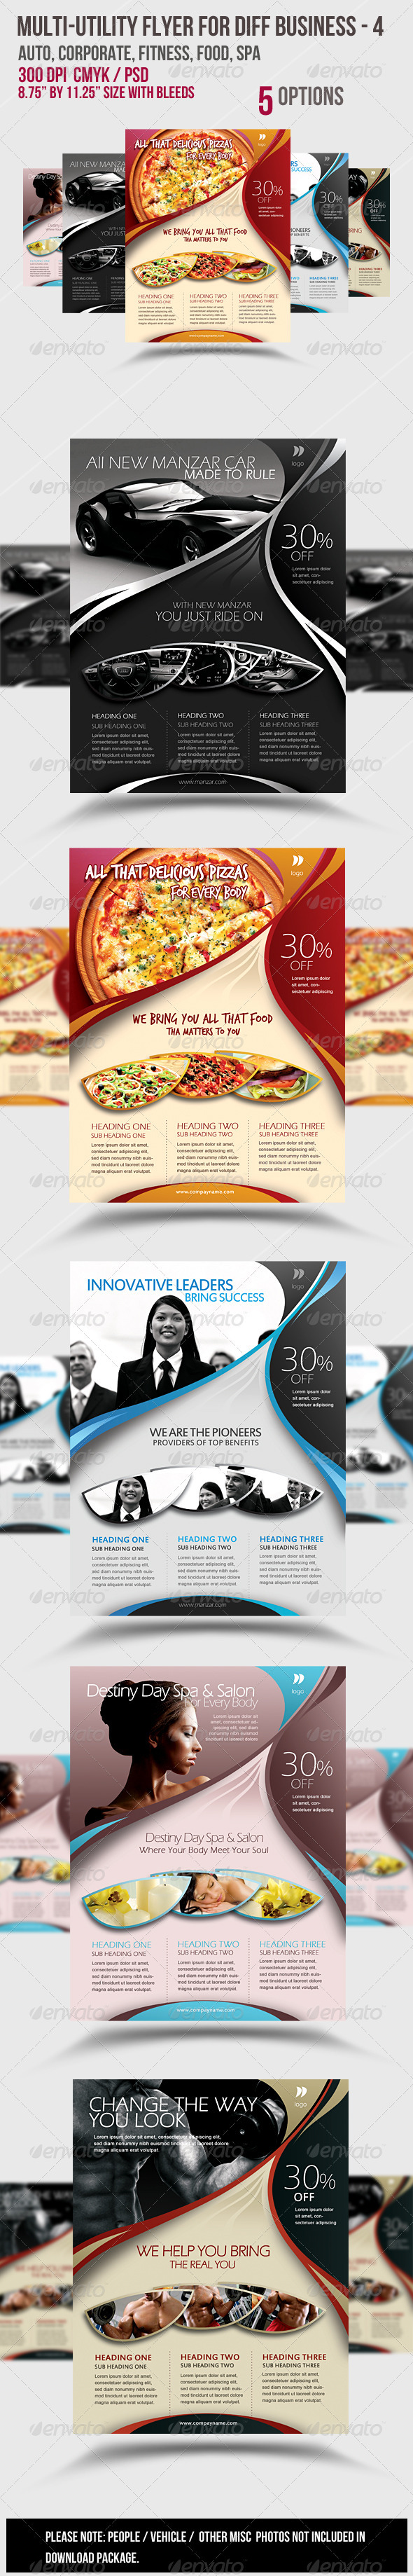 Multi-utility Flyer For Different Business - 4 - Commerce Flyers